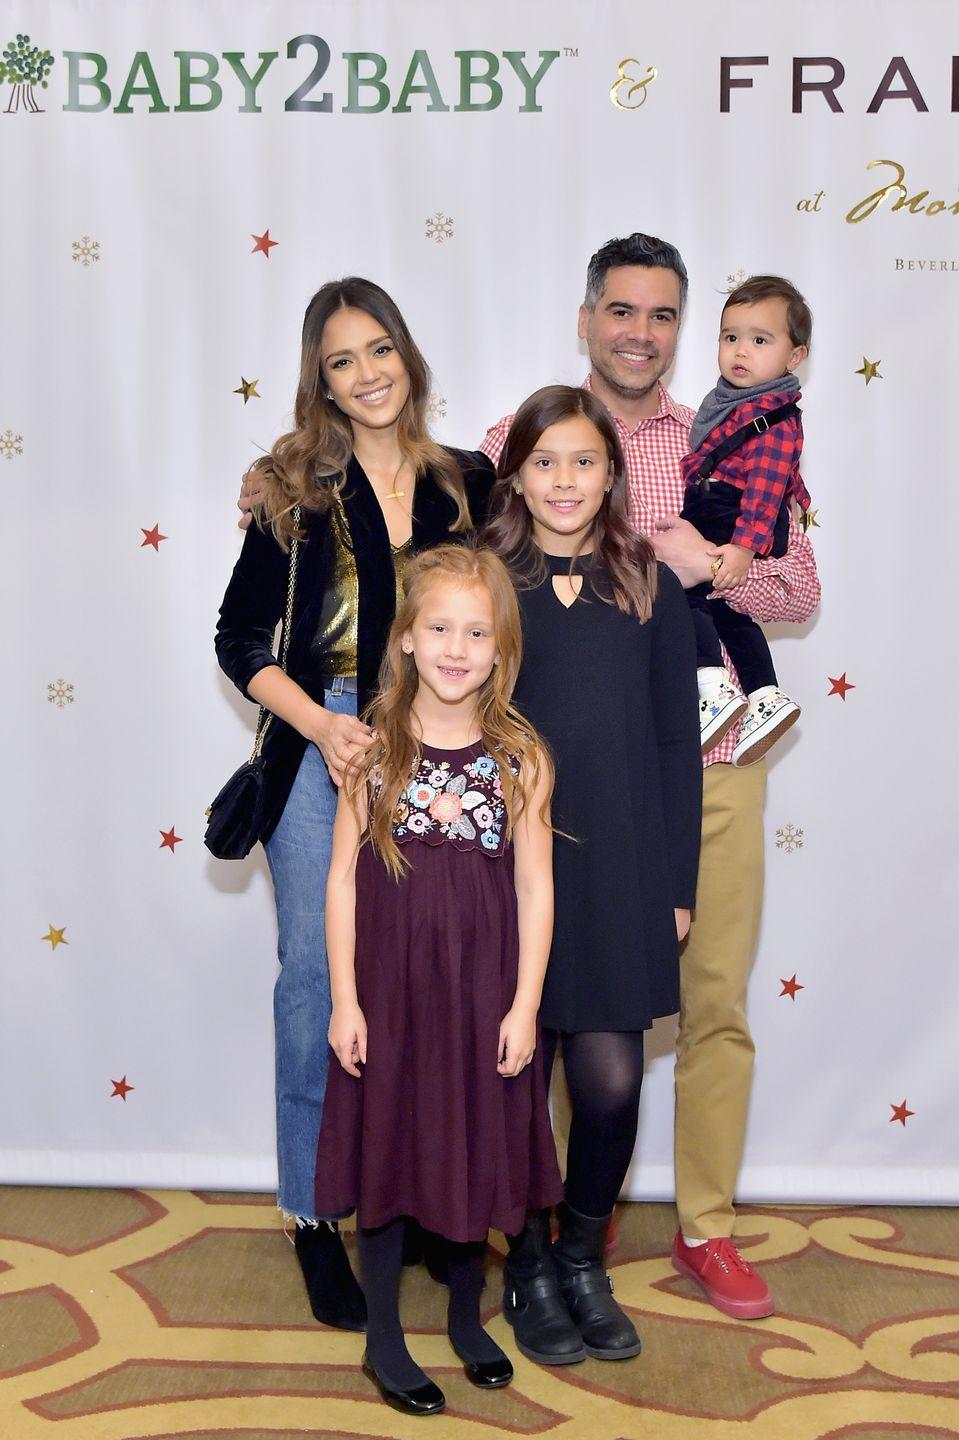 "<p>It can be different for everyone, but for Jessica that means having plenty of family time. 'You know, spending time with my kids kind of does take all the stress away, weirdly,' she told <a href=""https://www.womenshealthmag.com/life/a19939060/jessica-alba-q-and-a/"" rel=""nofollow noopener"" target=""_blank"" data-ylk=""slk:WomensHealthMag.com"" class=""link rapid-noclick-resp"">WomensHealthMag.com</a>. 'I'm in the moment with them. They make me so happy, they're pure joy. I know they're not going to be little forever, so I really soak up as much as I possibly can with them. That's kind of how I de-stress.'<br></p>"